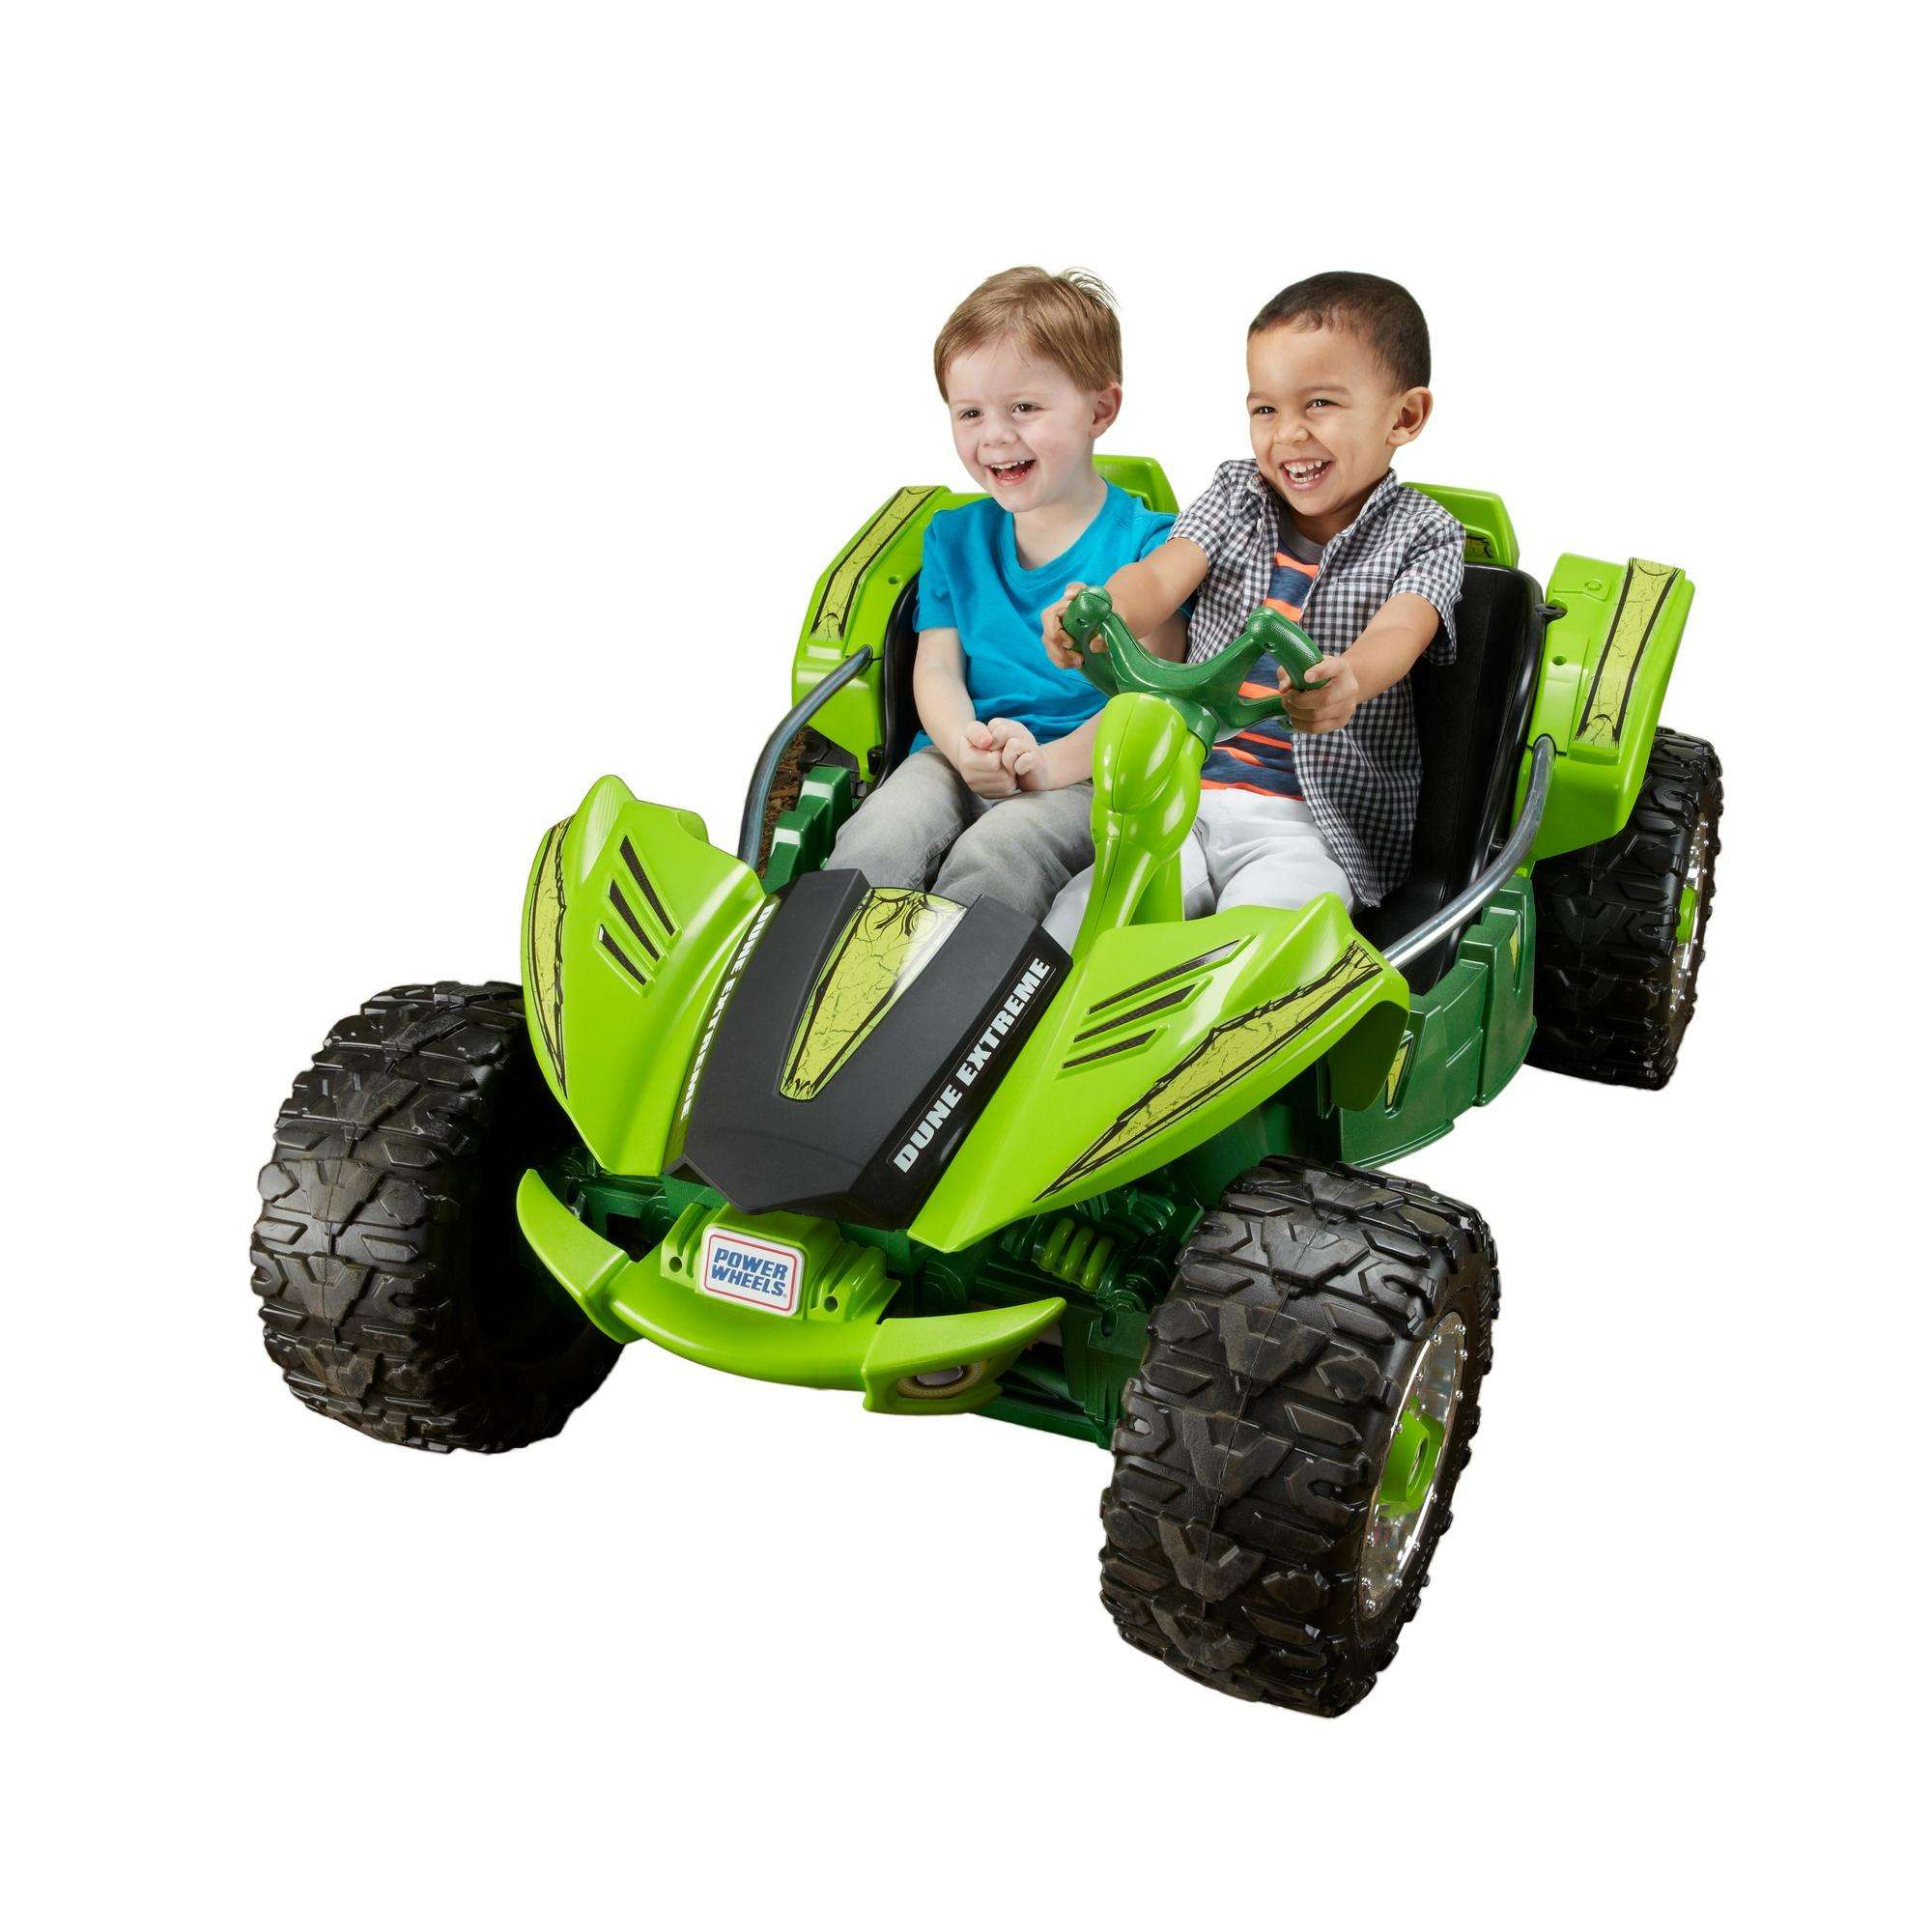 Power Wheels Dune Racer Extreme 12-Volt Battery-Powered Ride-On